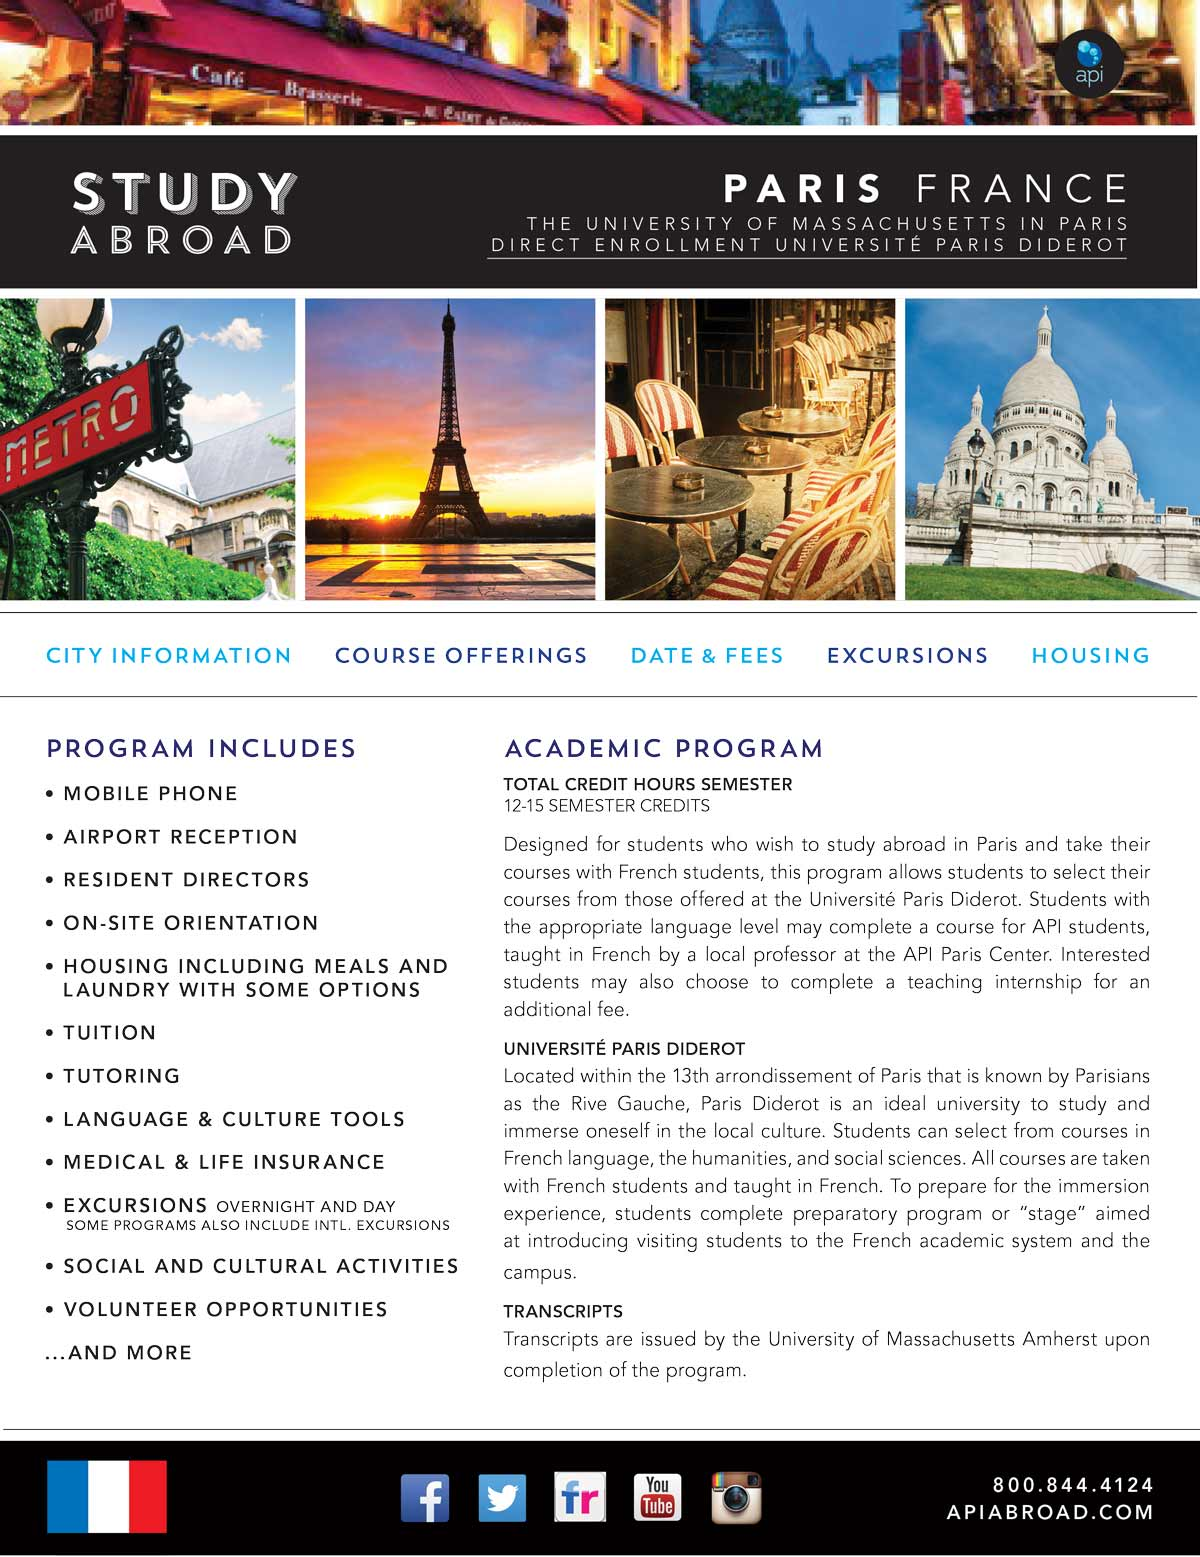 Studying Abroad? Paris is the Place to Be!